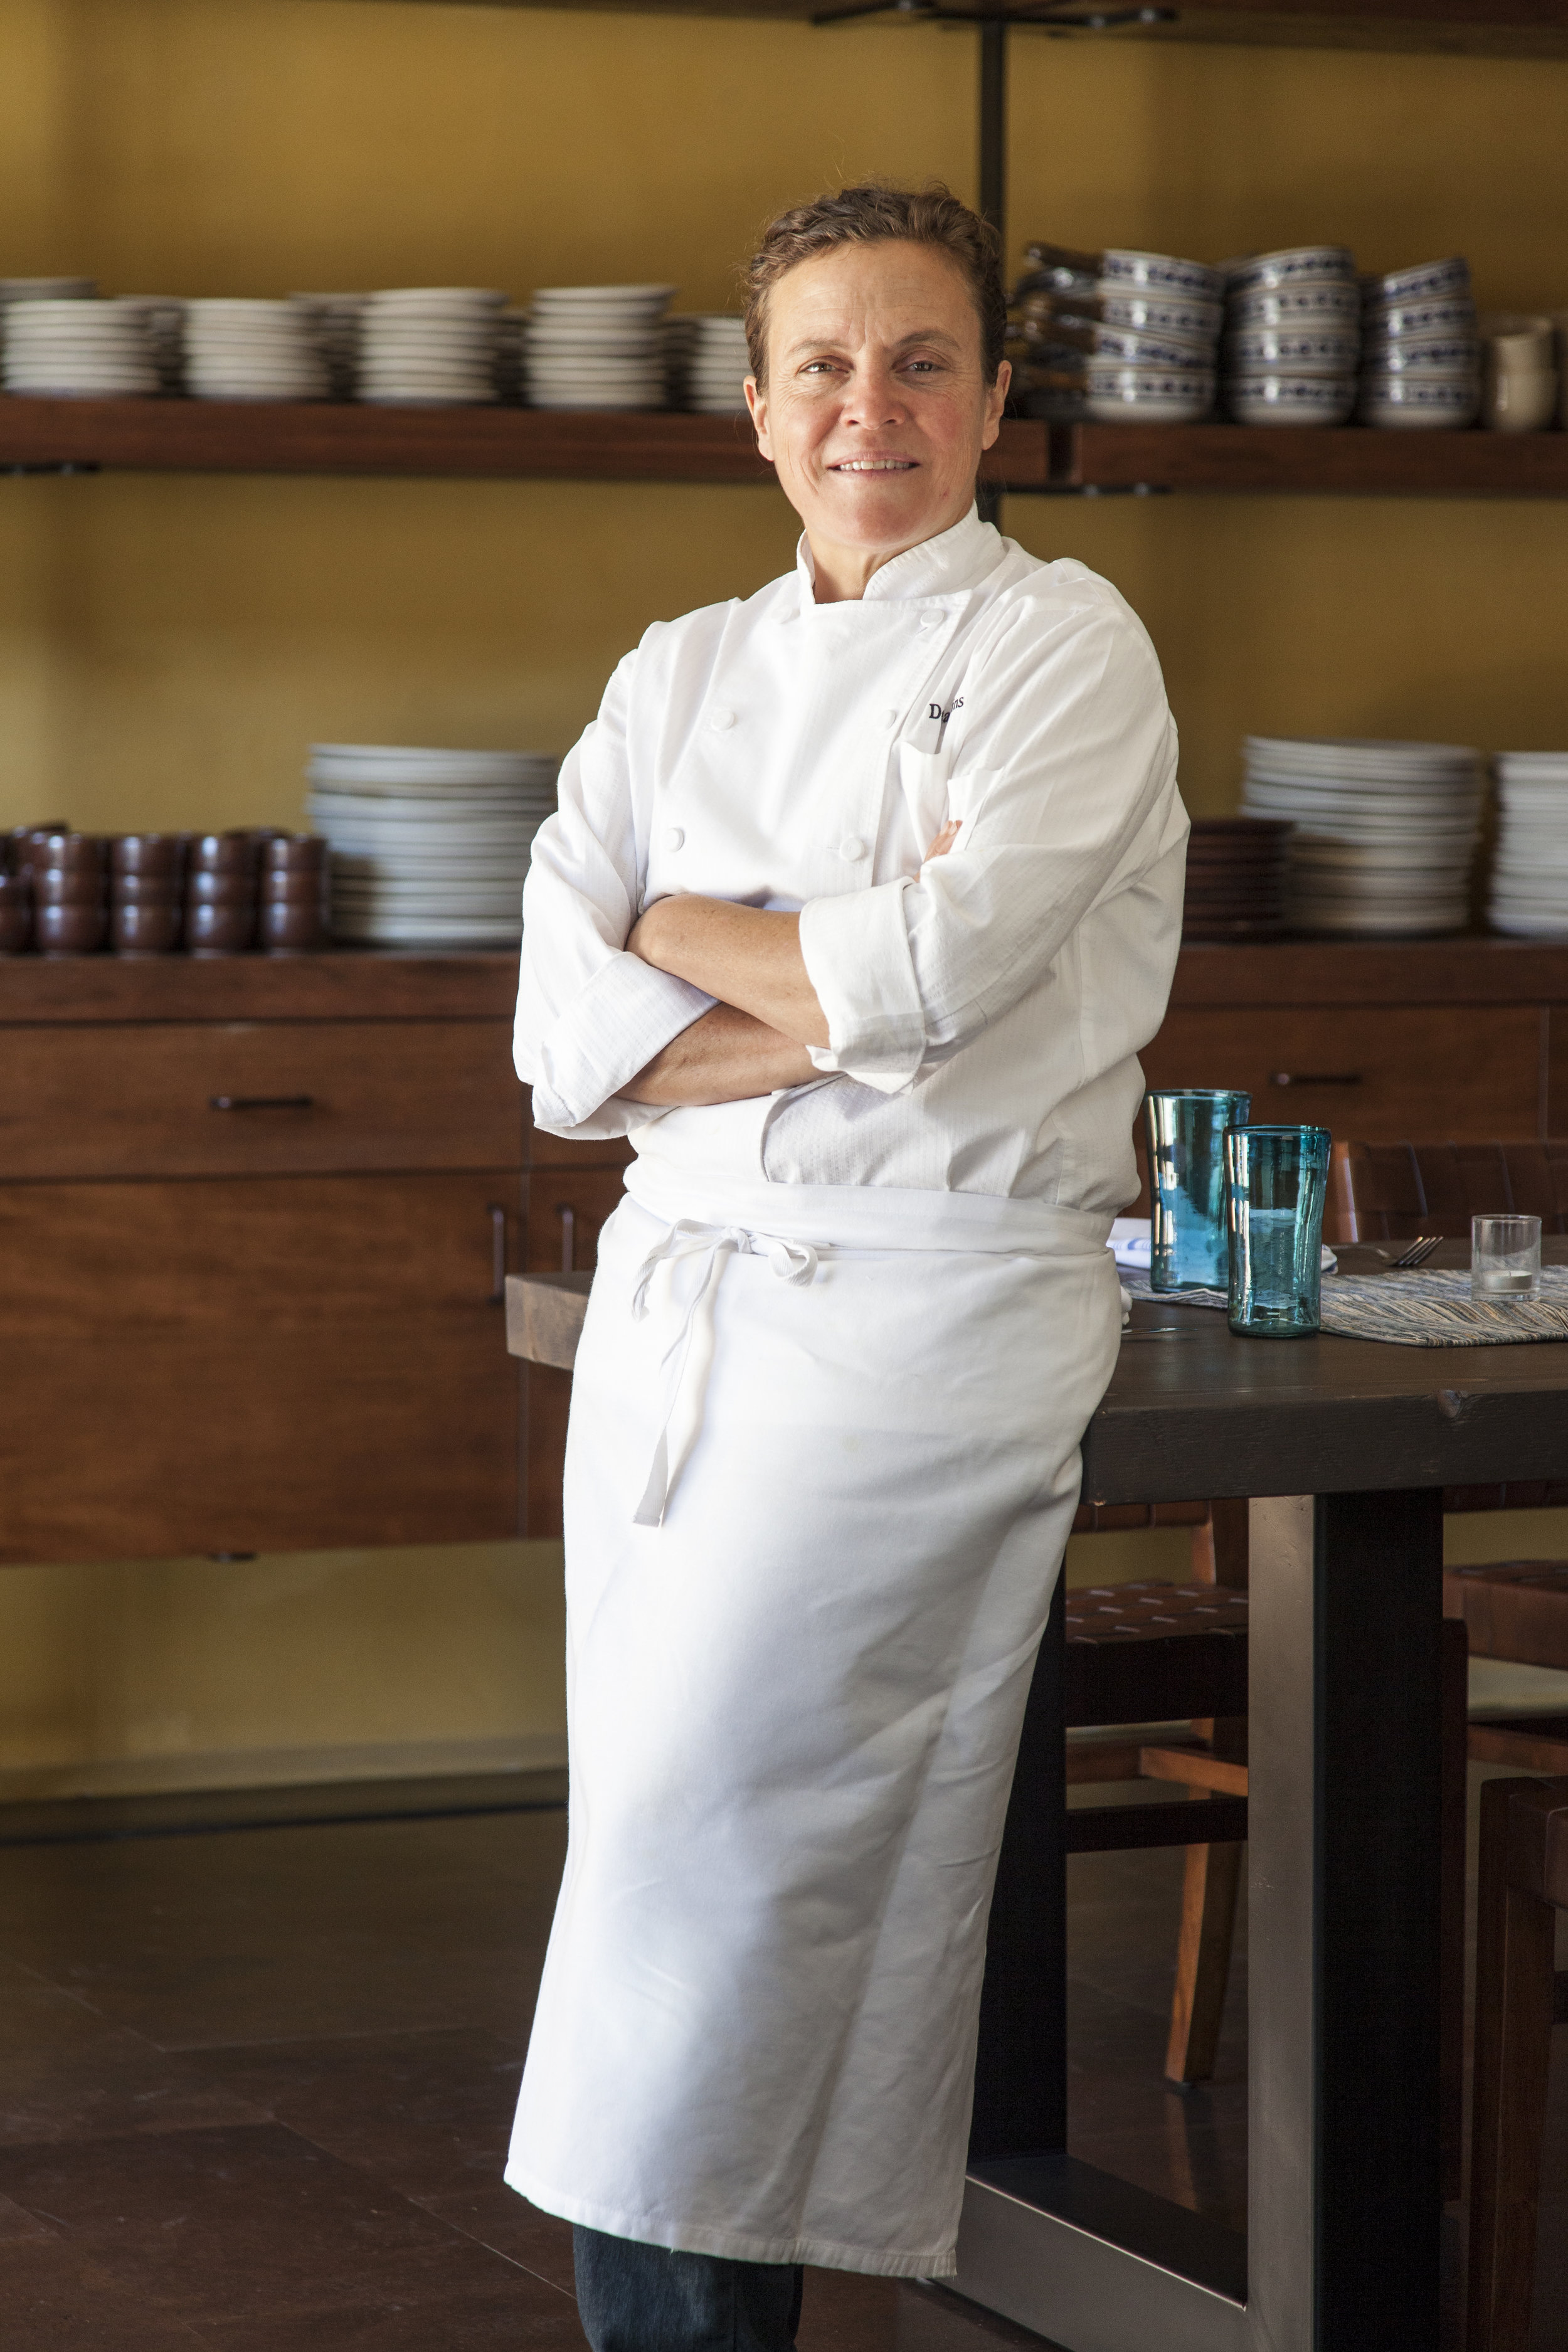 CHEF TRACI DES JARDINS   Chef Des Jardins has been a force in the San Francisco food scene for more than two decades. She runs a diverse group of restaurants in San Francisco, including:  Jardinière ,  Arguello , The Commissary,  Mijita Cocina Mexicana ,  Public House  and  TRANSIT .  She is a dedicated philanthropist, sitting on the board of the local non-profit La Cocina, and has been a longtime supporter of the farm to table movement and sustainability. She has won numerous awards from national and local magazines and the James Beard Foundation.